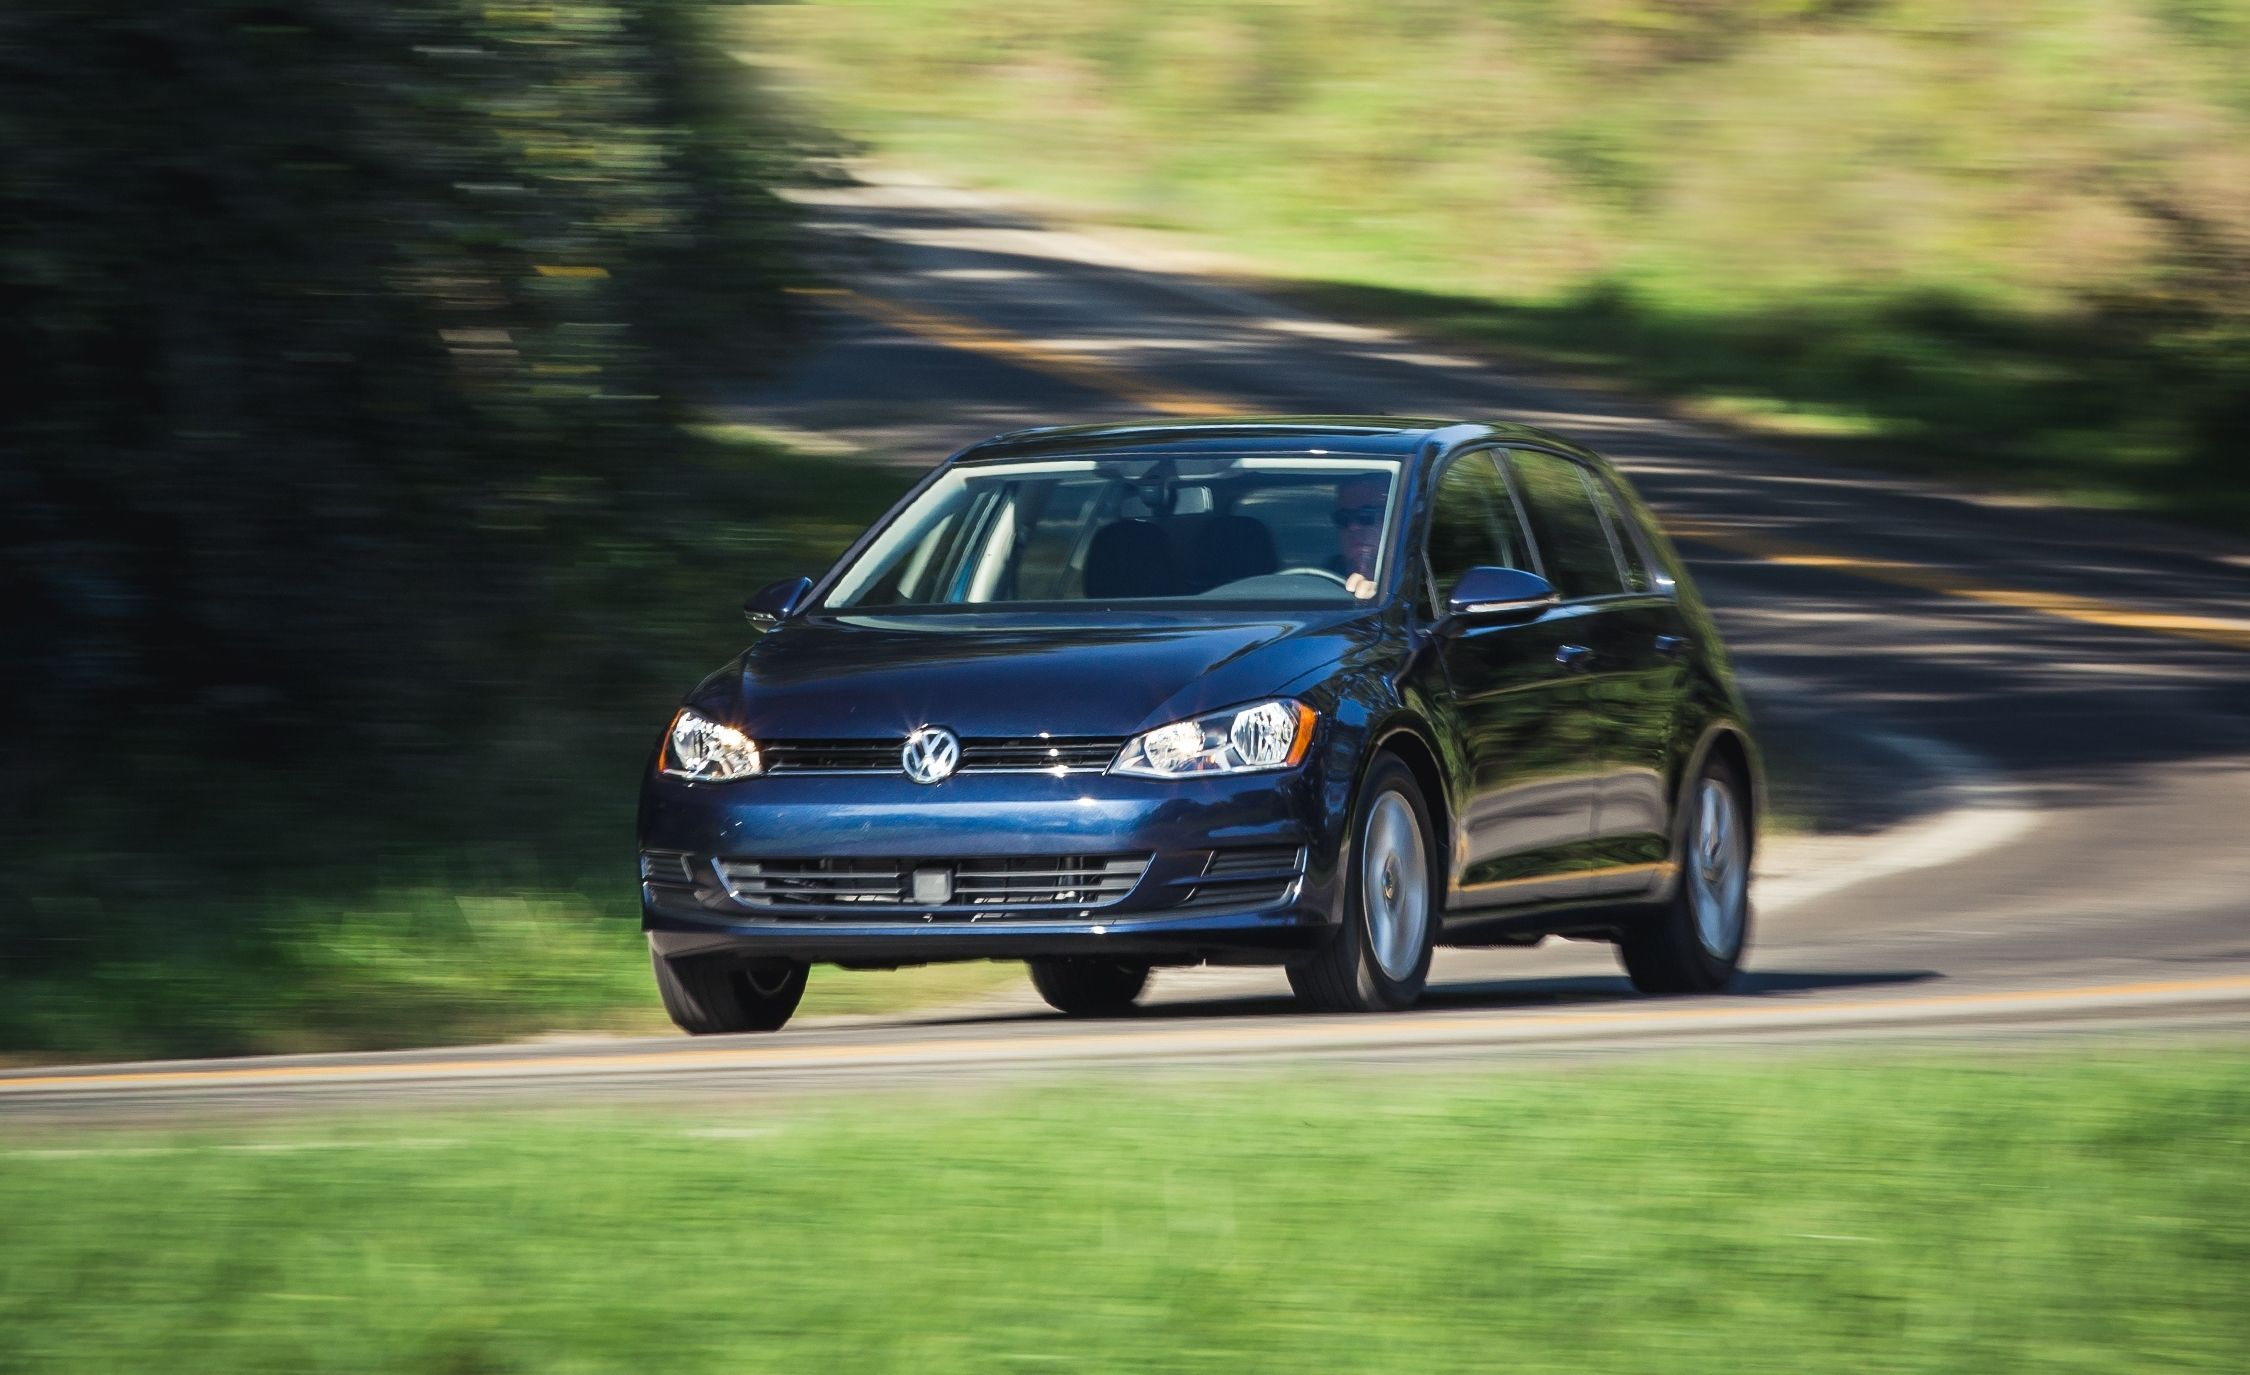 2017 Volkswagen Golf 1 8t Tsi Wolfsburg Edition Test 8211 Review Car And Driver